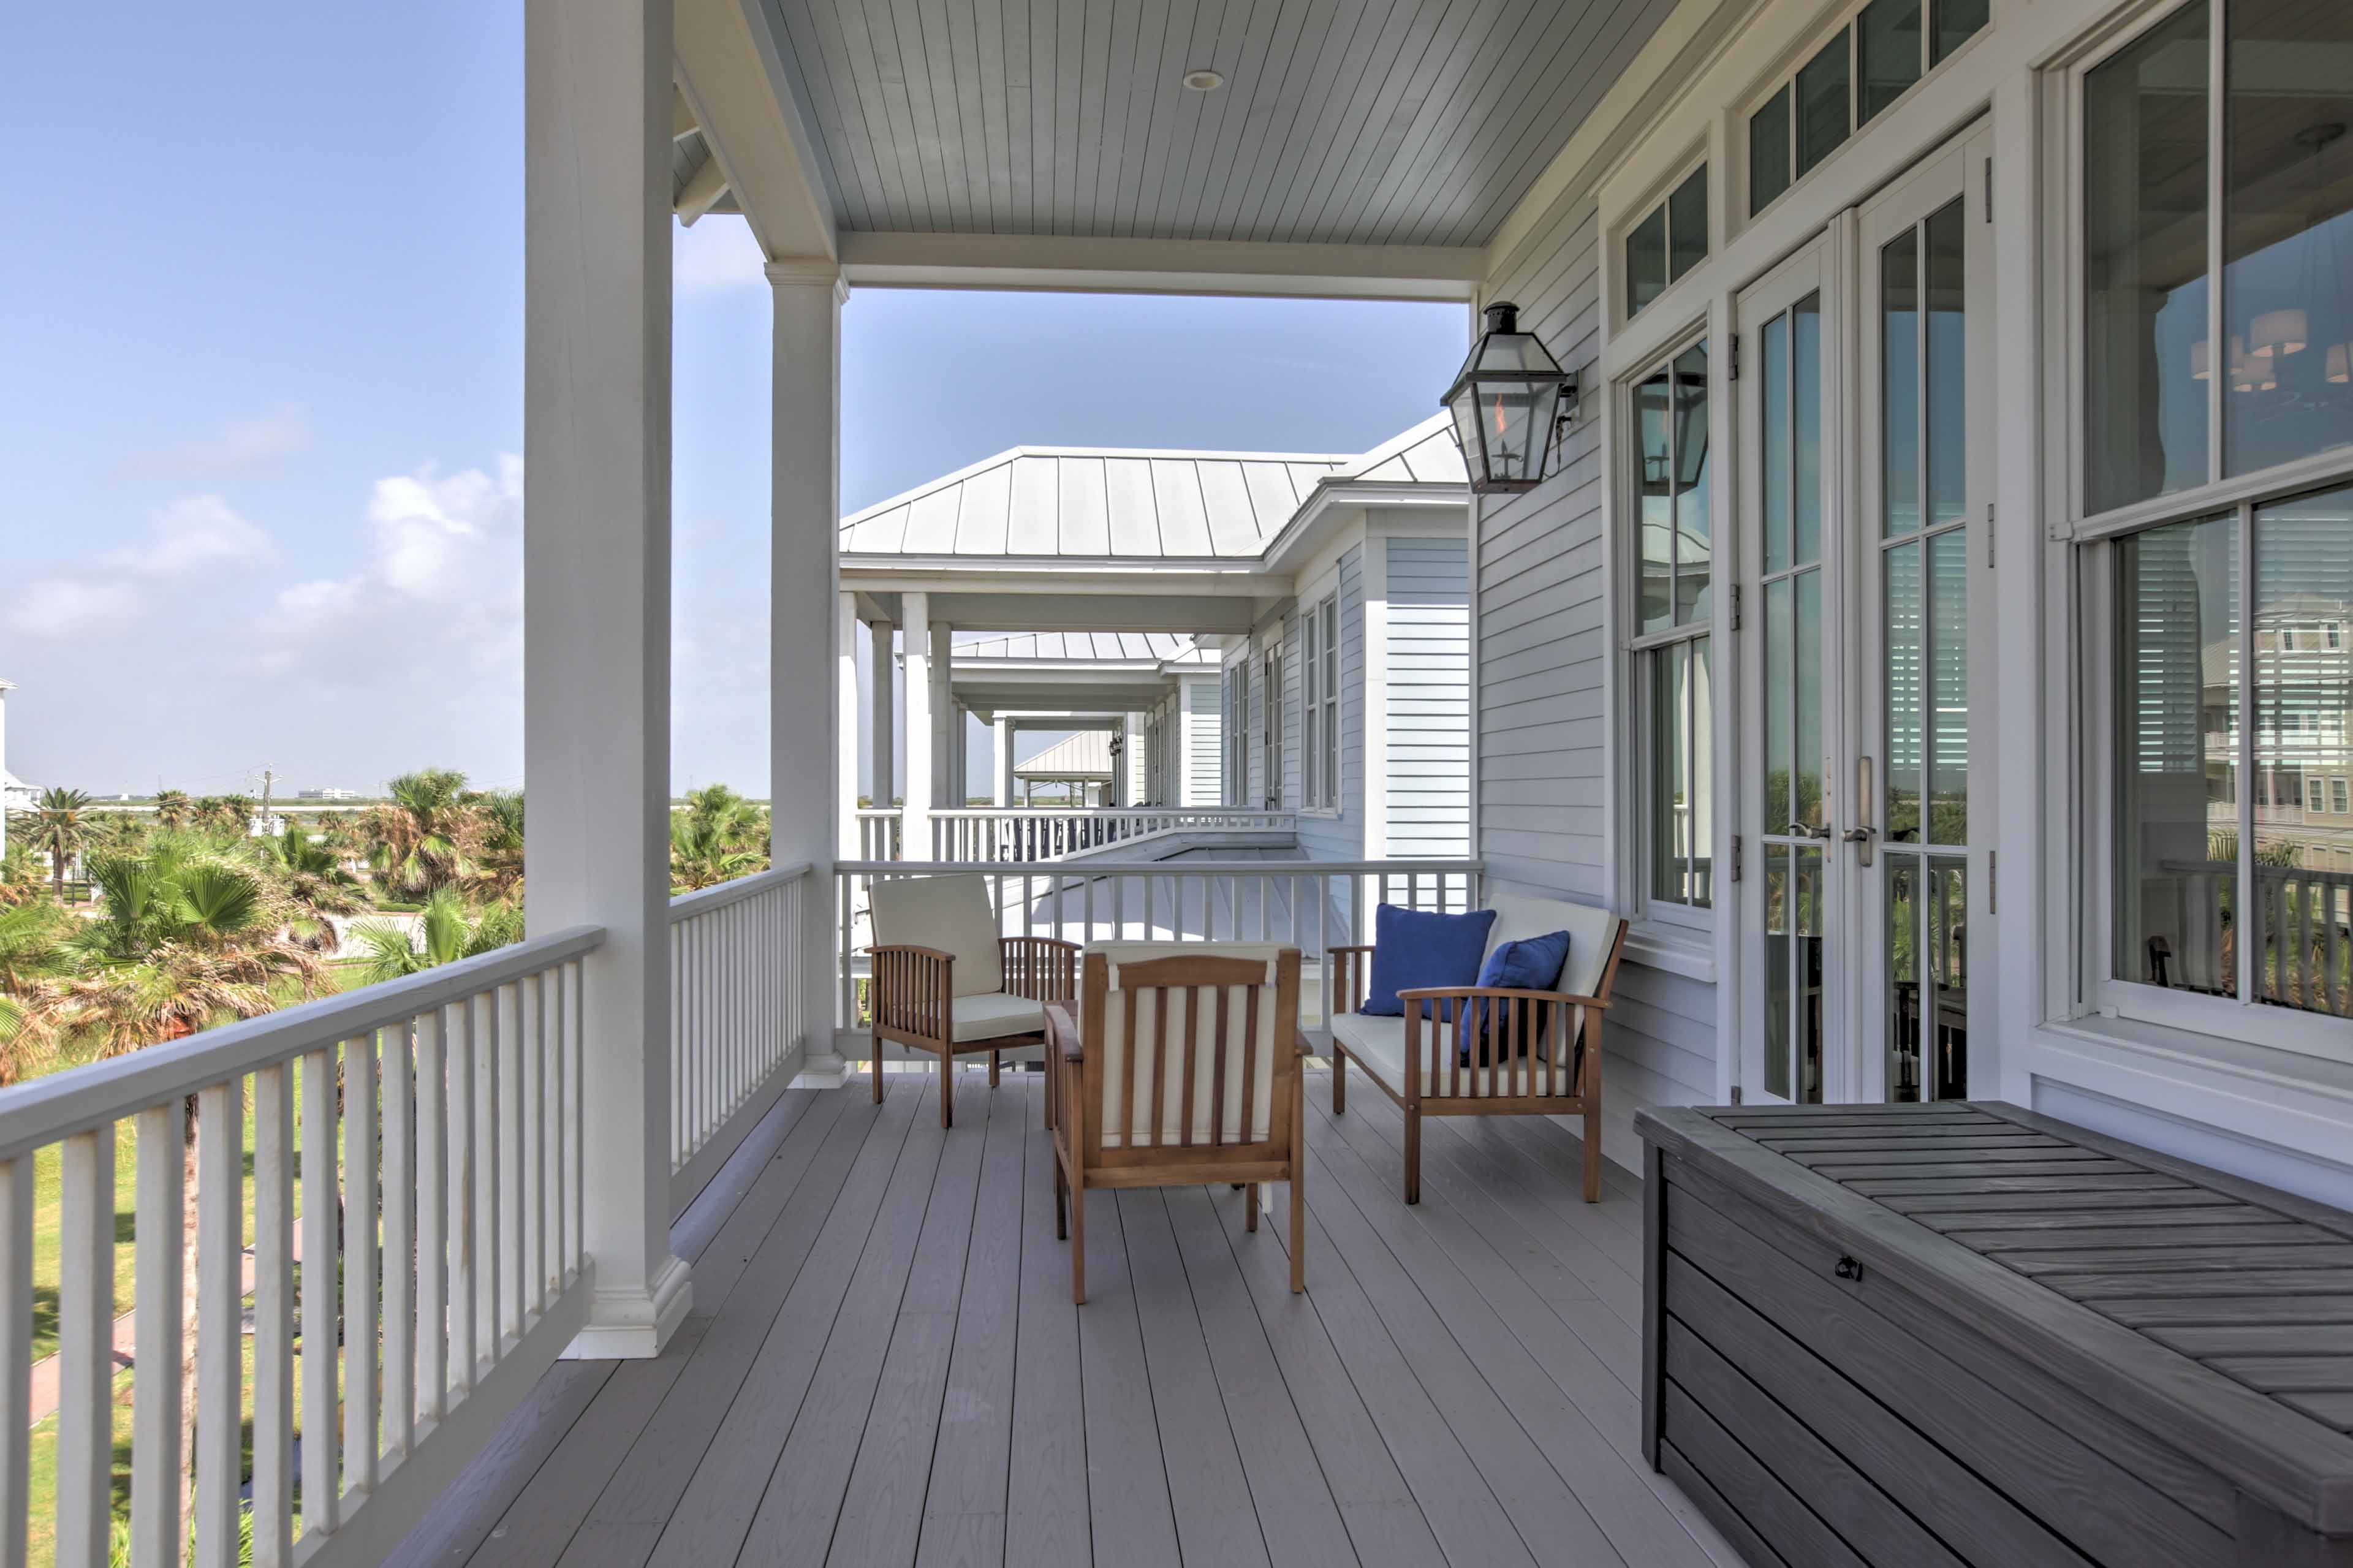 Feel the sea breeze while you relax on the balcony.